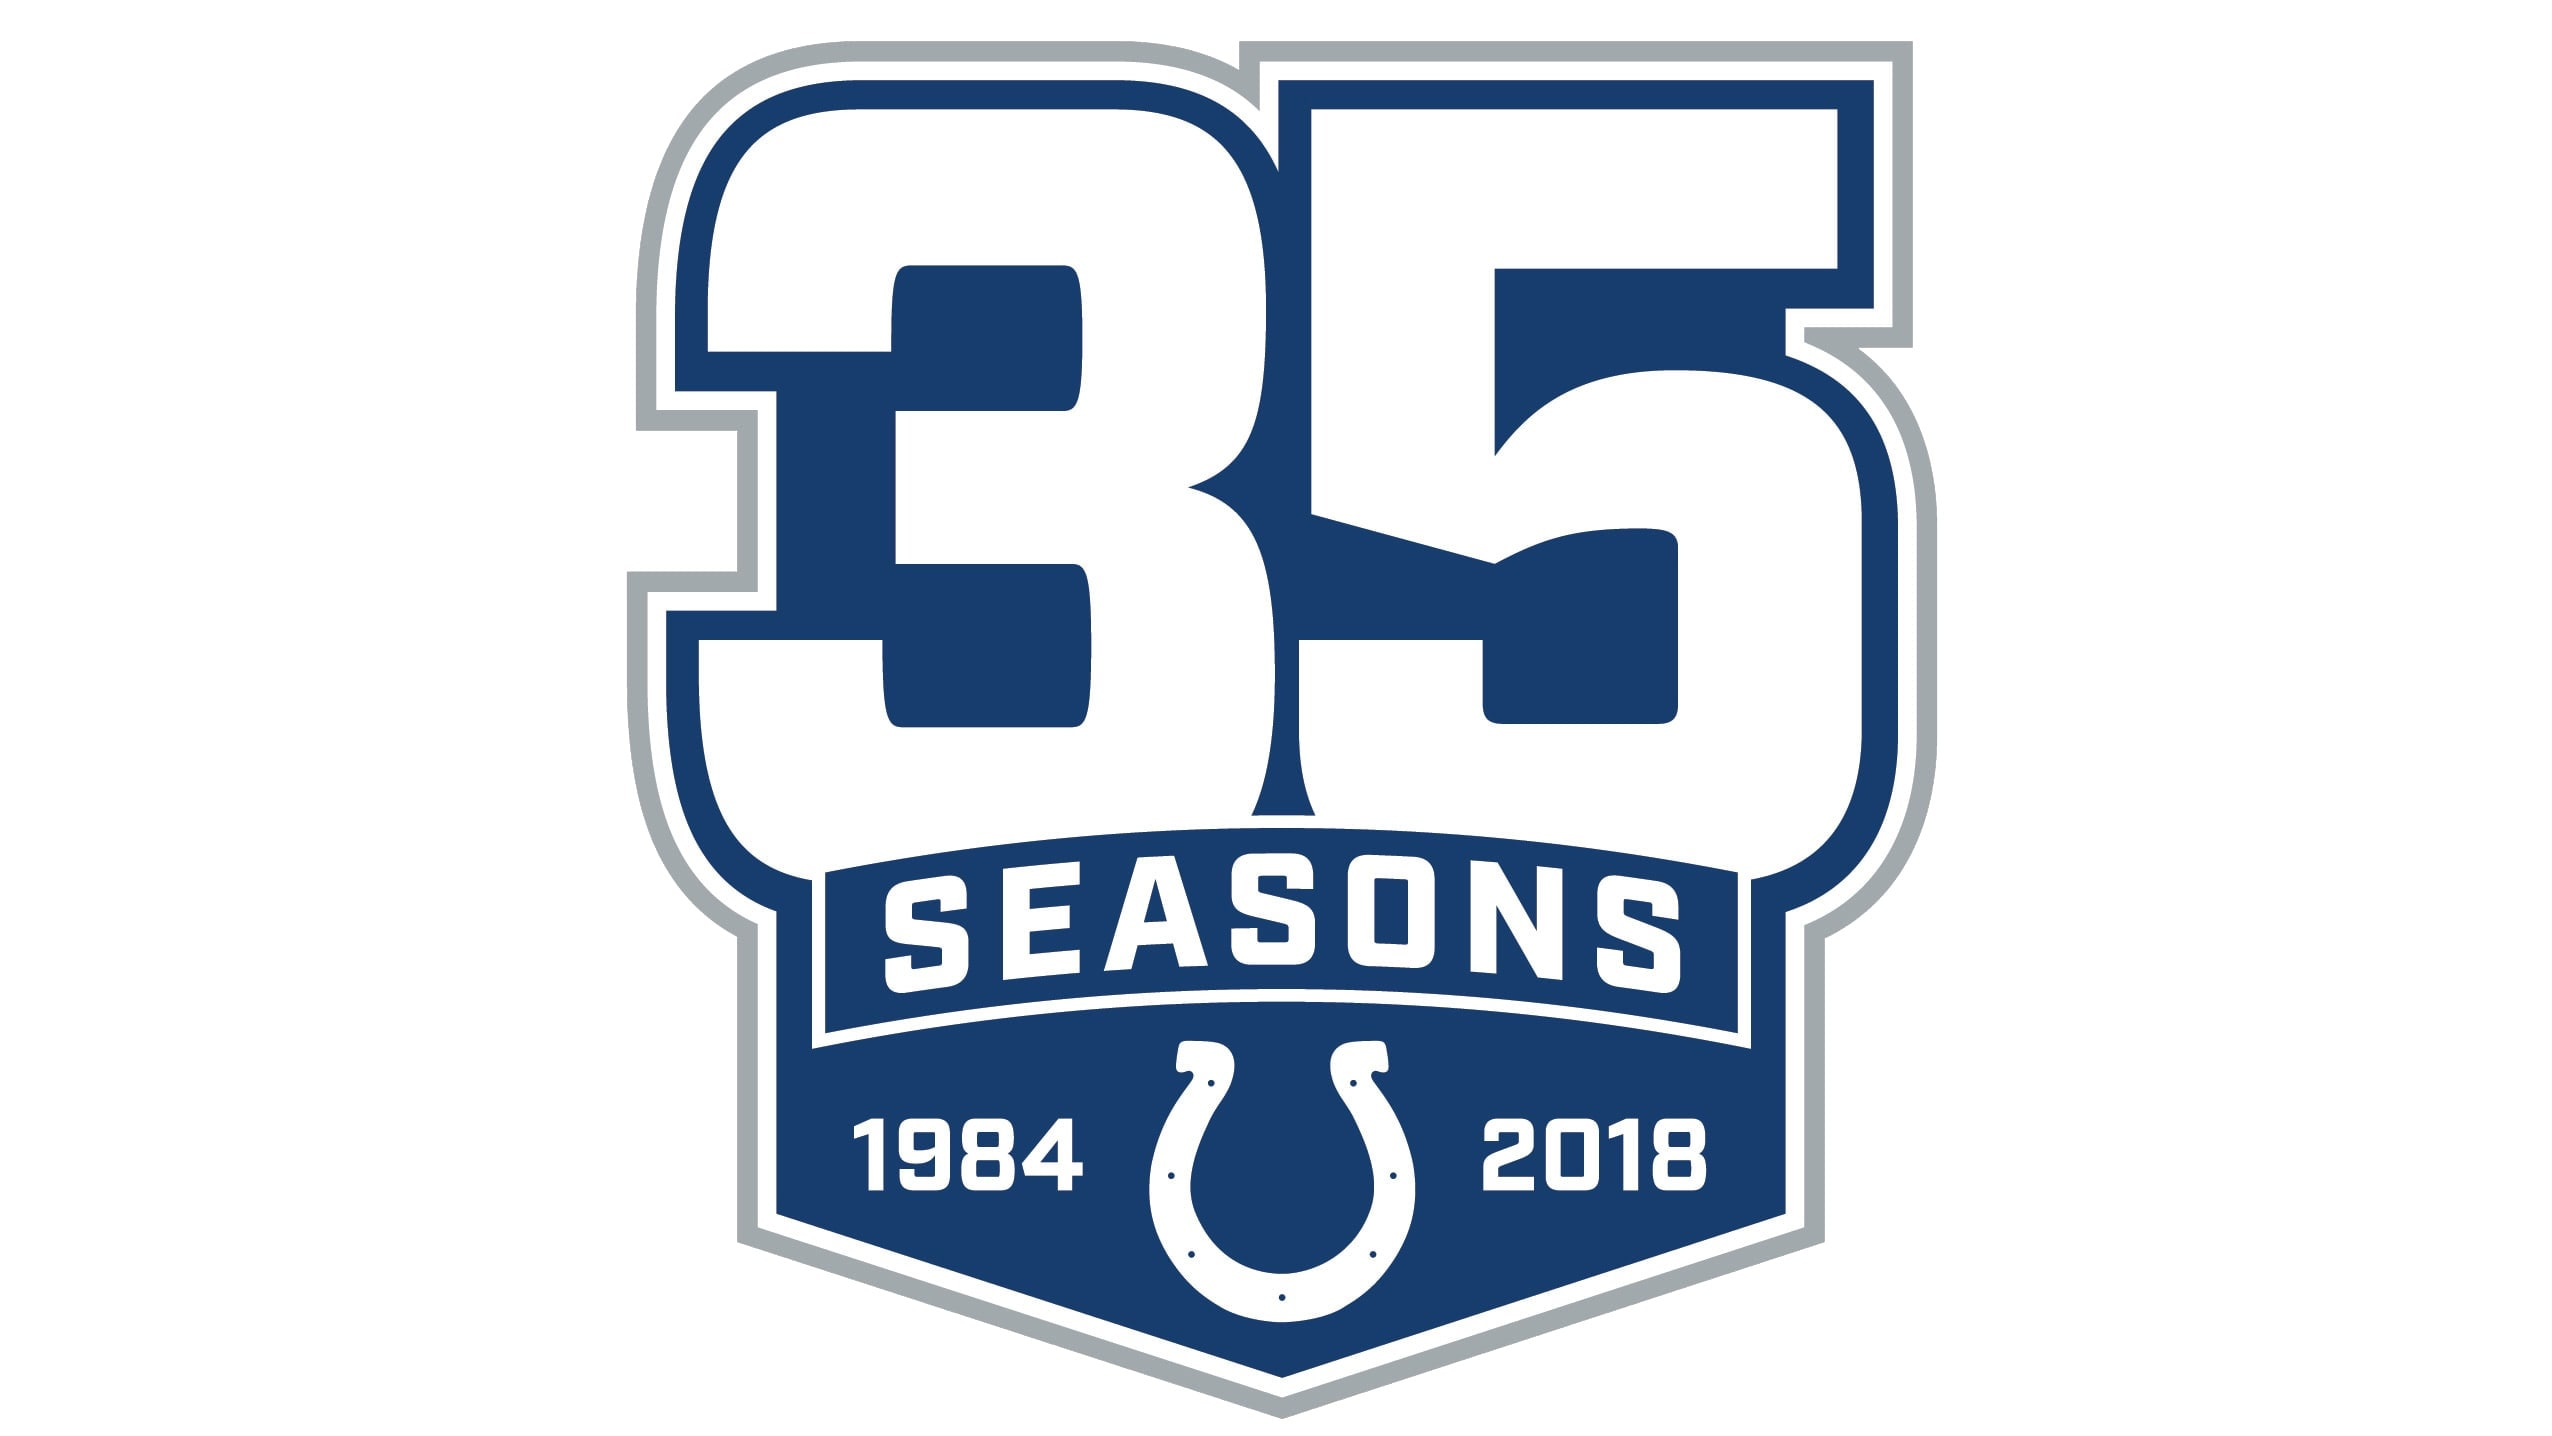 Celebrating 35 Seasons in Indianapolis